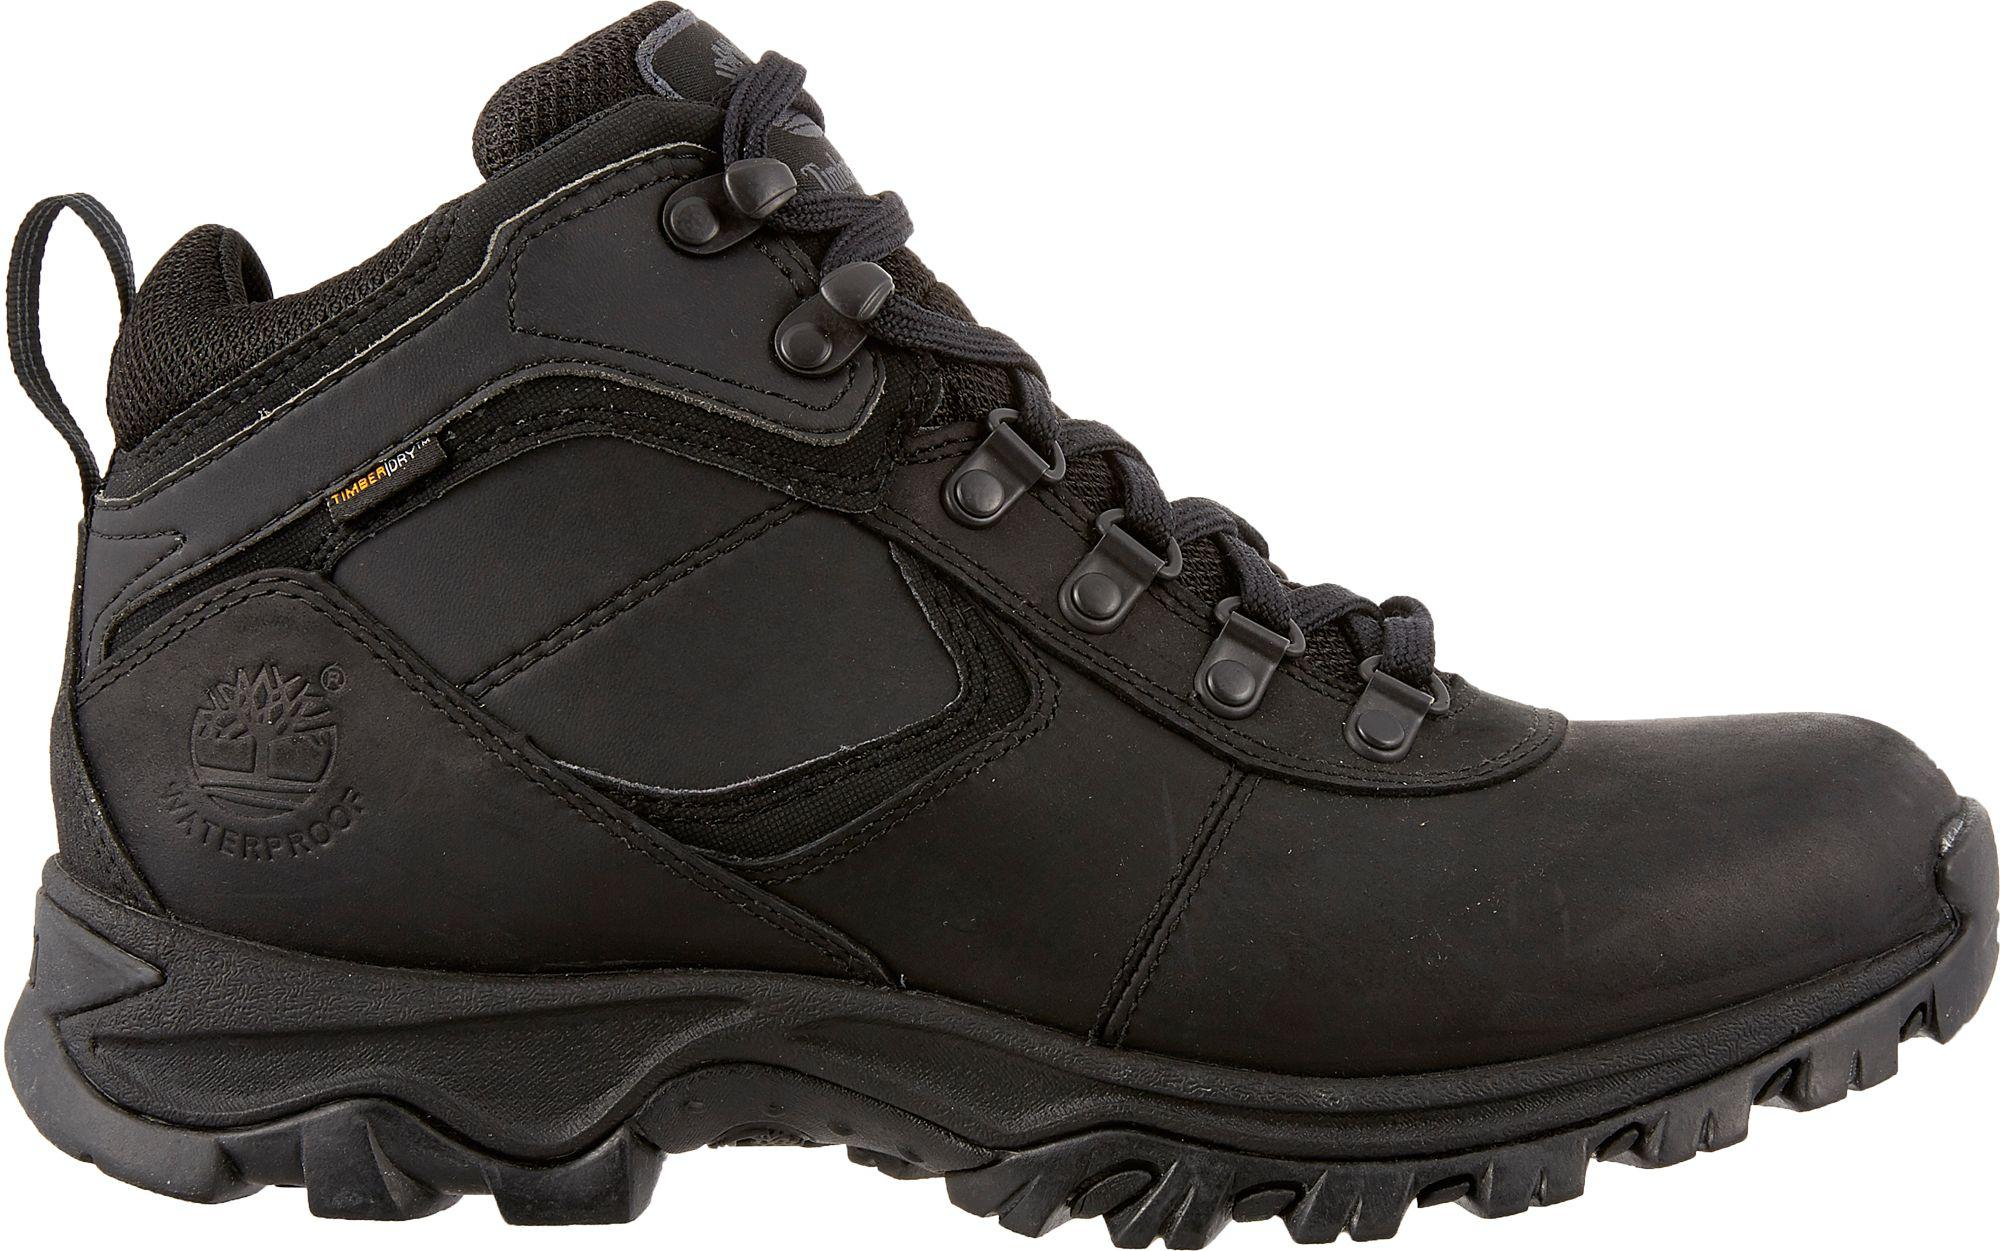 031cee576ae6 Timberland - Black Earthkeepers Mt. Maddsen Mid Waterproof Hiking Boots for  Men - Lyst